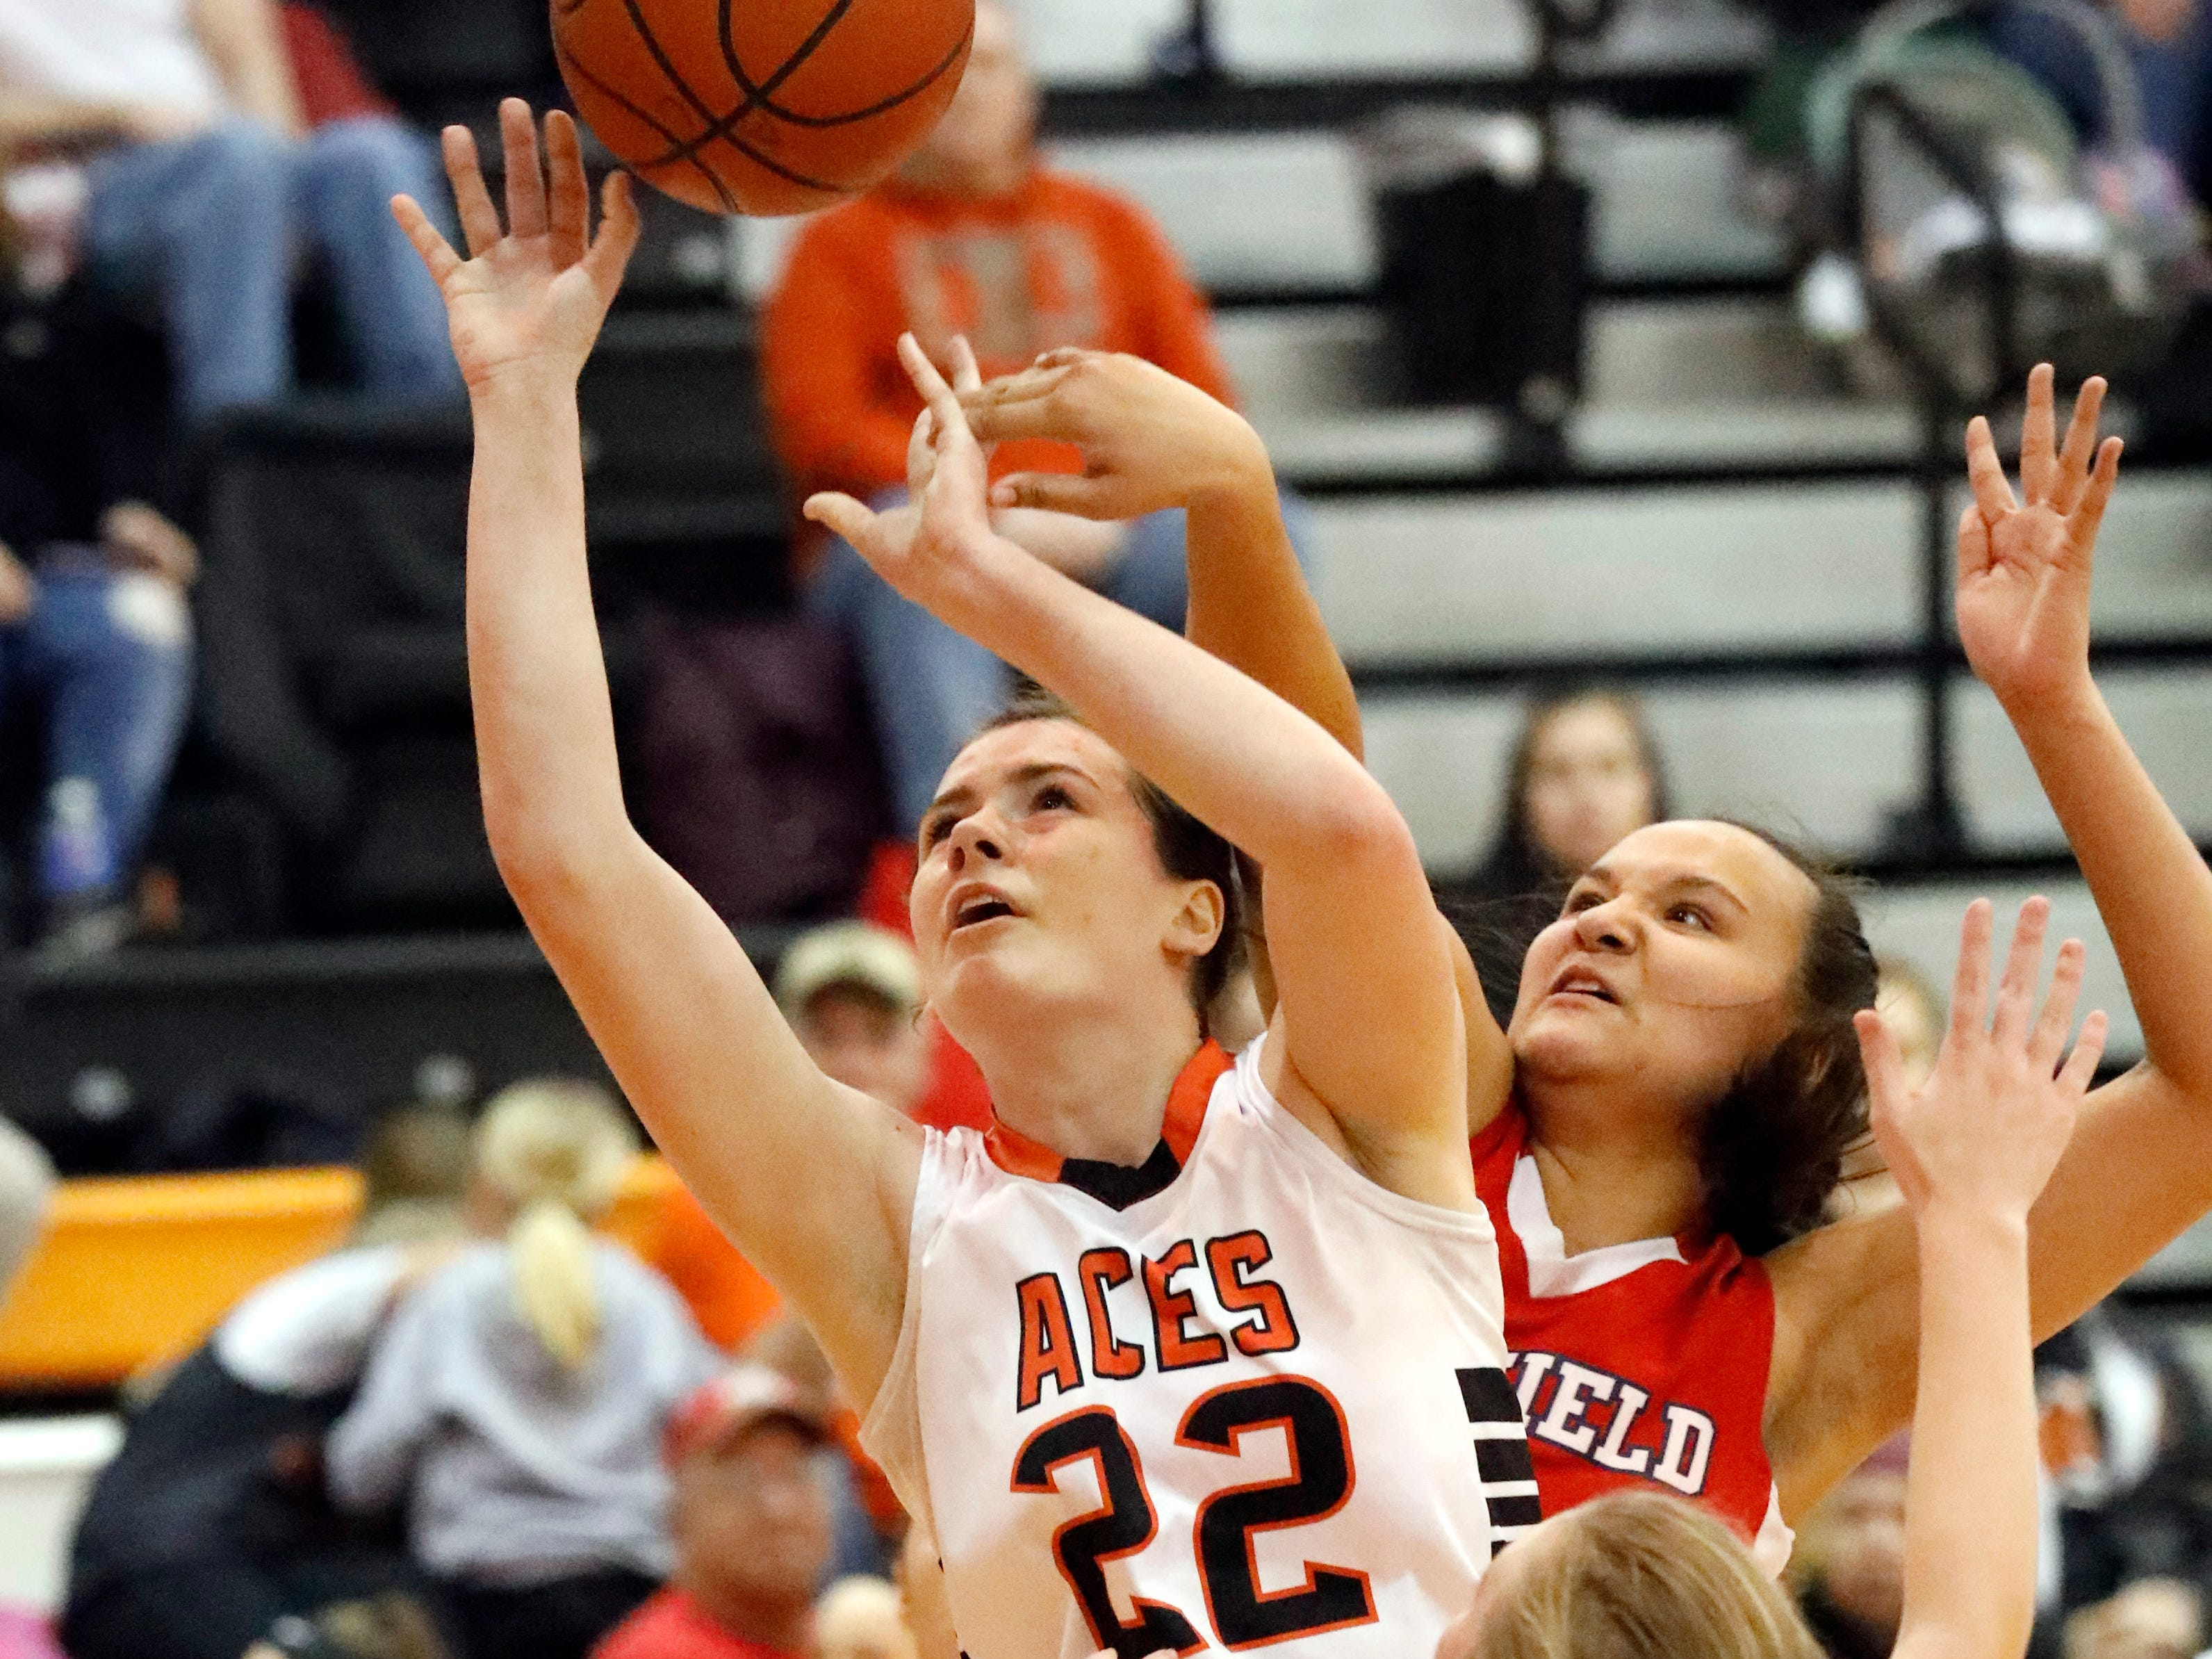 Amanda-Clearcreek's Katelynn Connell is fouled by Fairfield Christian's Janae Grabans during Thursday night's game, Jan. 31, 2019, at Amanda-Clearcreek High School in Amanda. The Aces won the game 51-43.